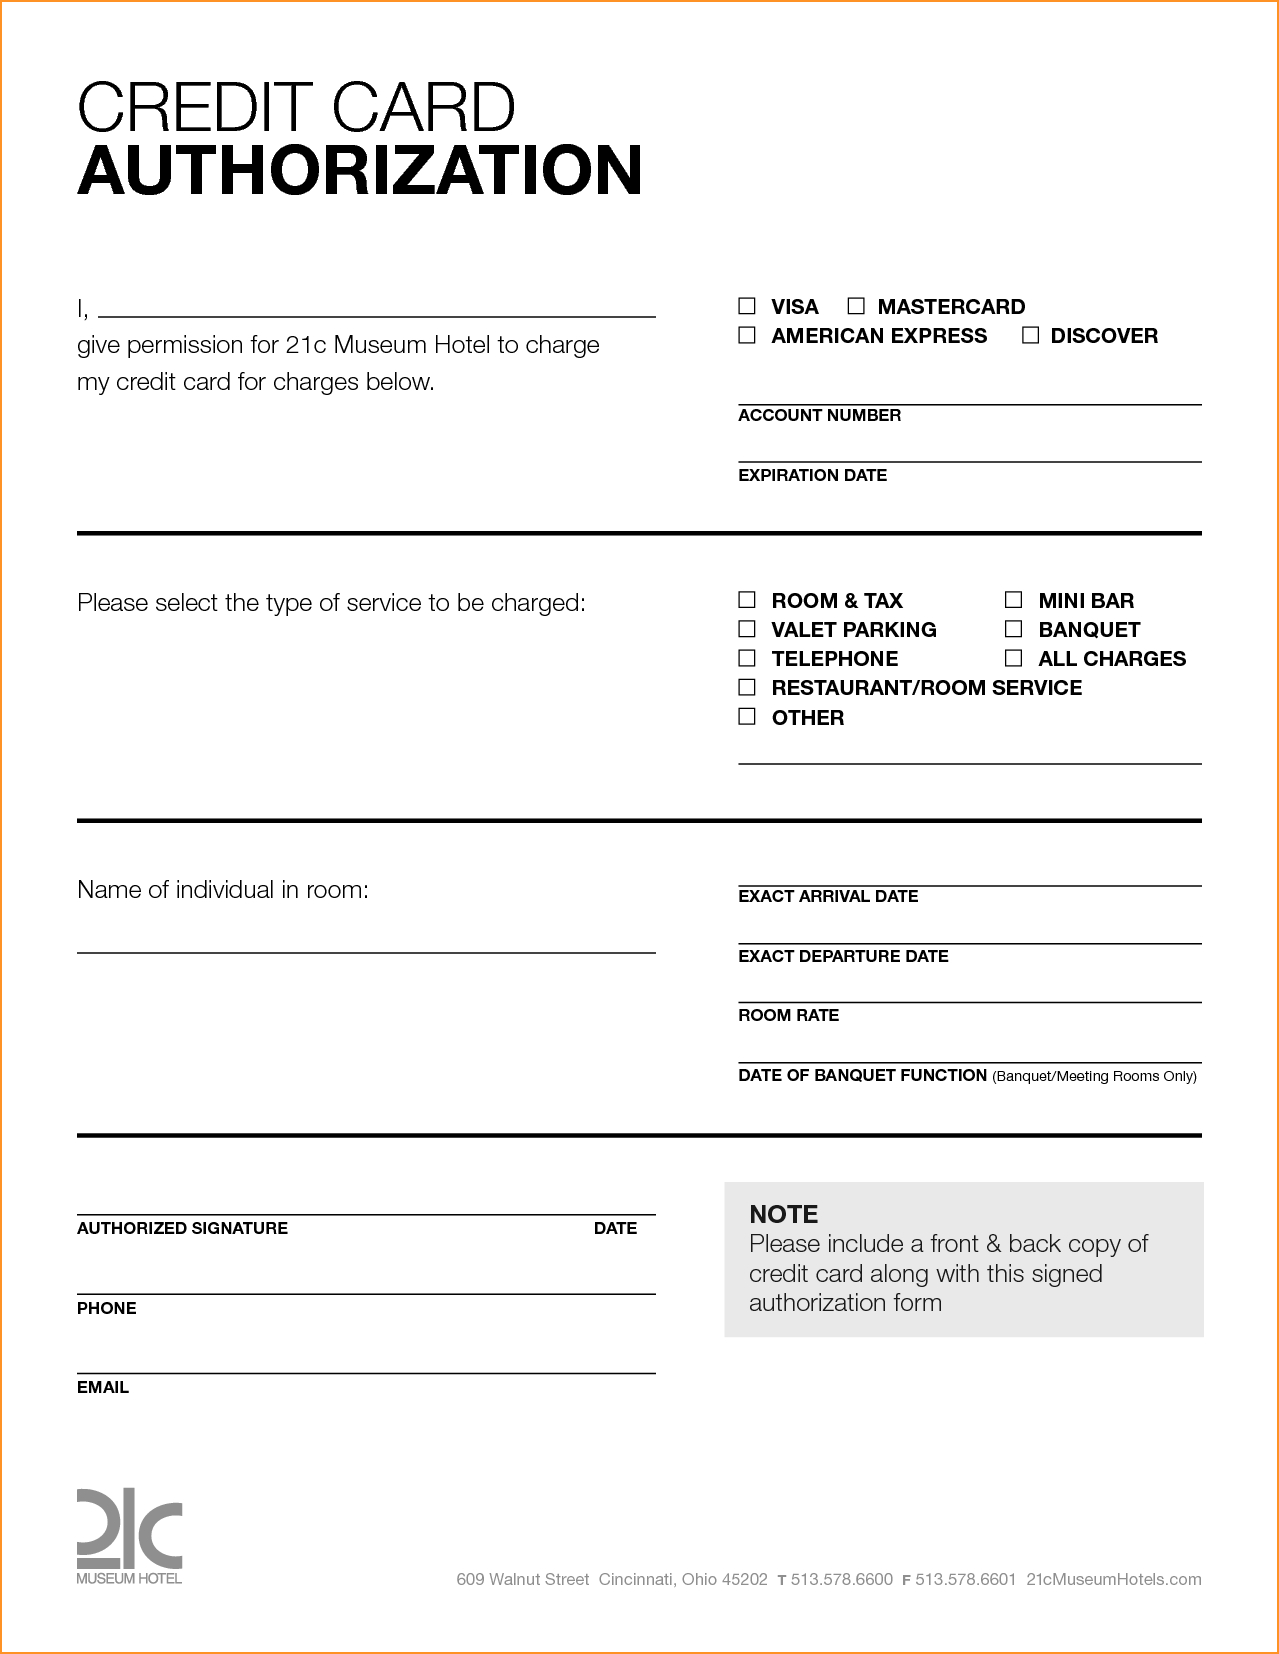 Free Printable Credit Card Authorization Form Blank Pin pertaining to Credit Card Authorization Form Template Word